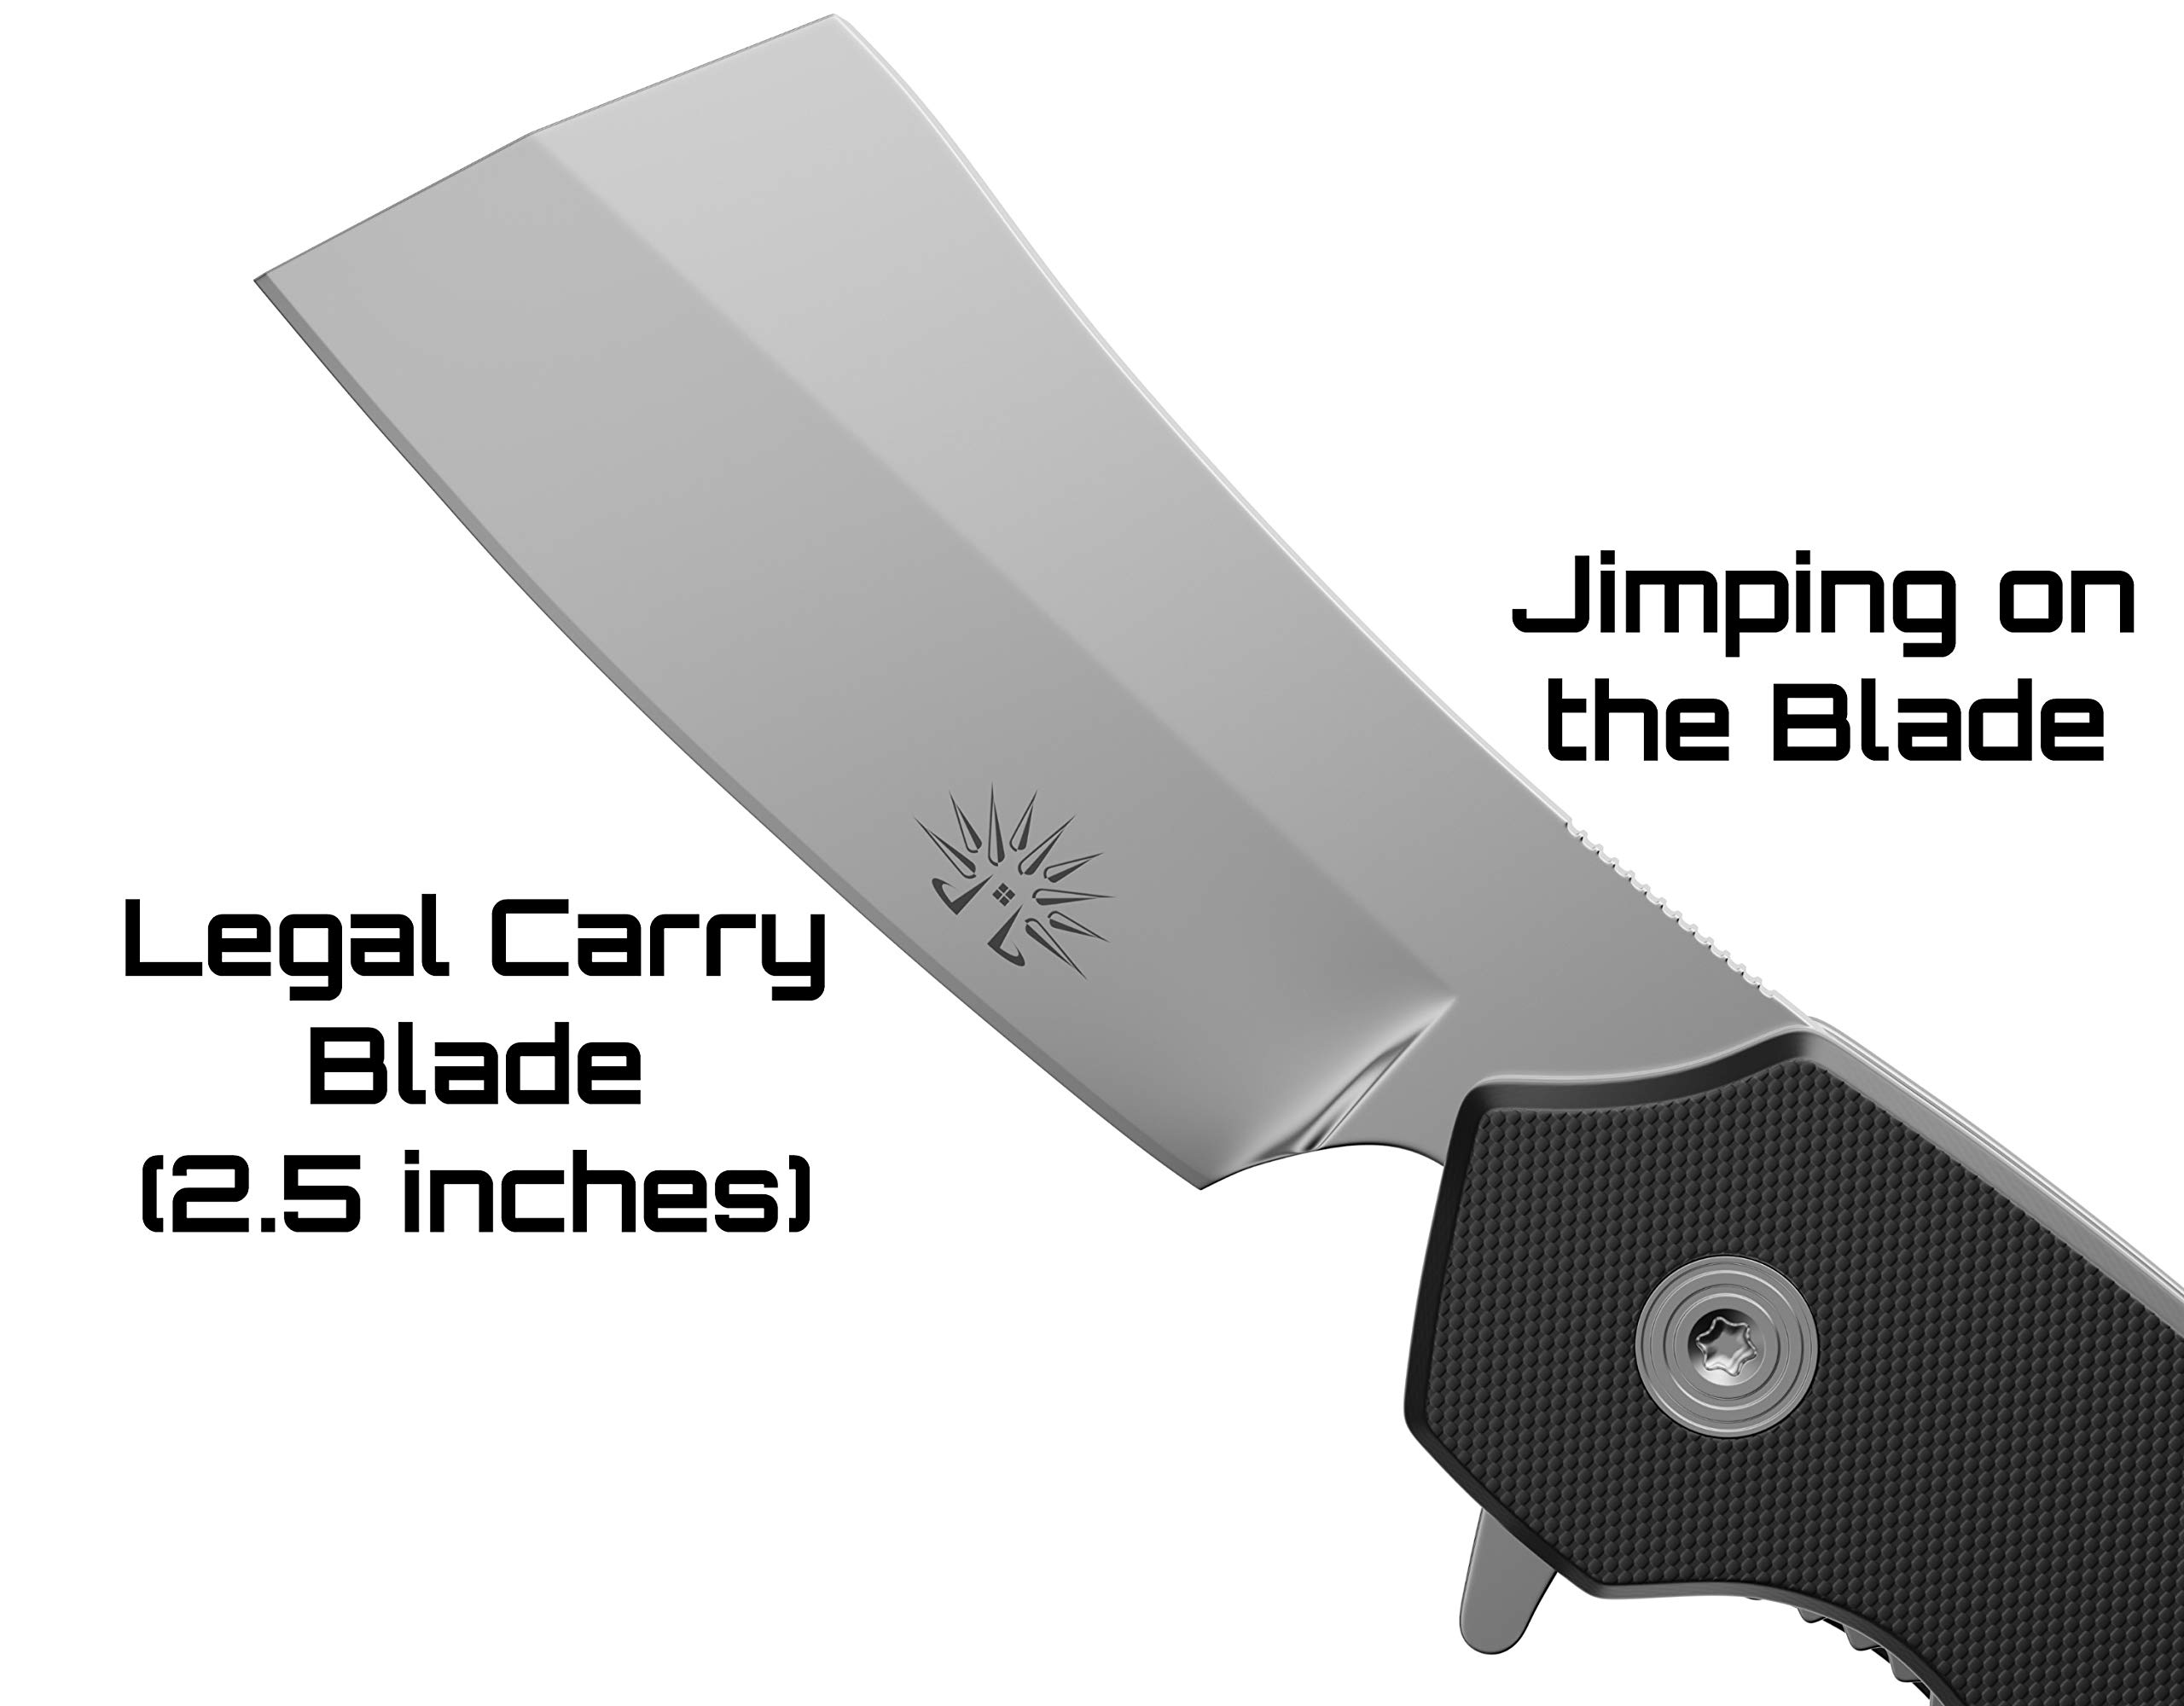 Off-Grid Knives - Cleaver Compact EDC Folding Knife, Satin Finish, Safety Grid-Lock Turns This Folder Into A Fixed Blade, Cryo AUS8 Blade Steel, G10 Handle & Tip-Up Reversible Deep Carry Pocket Clip by Off-Grid Knives (Image #2)